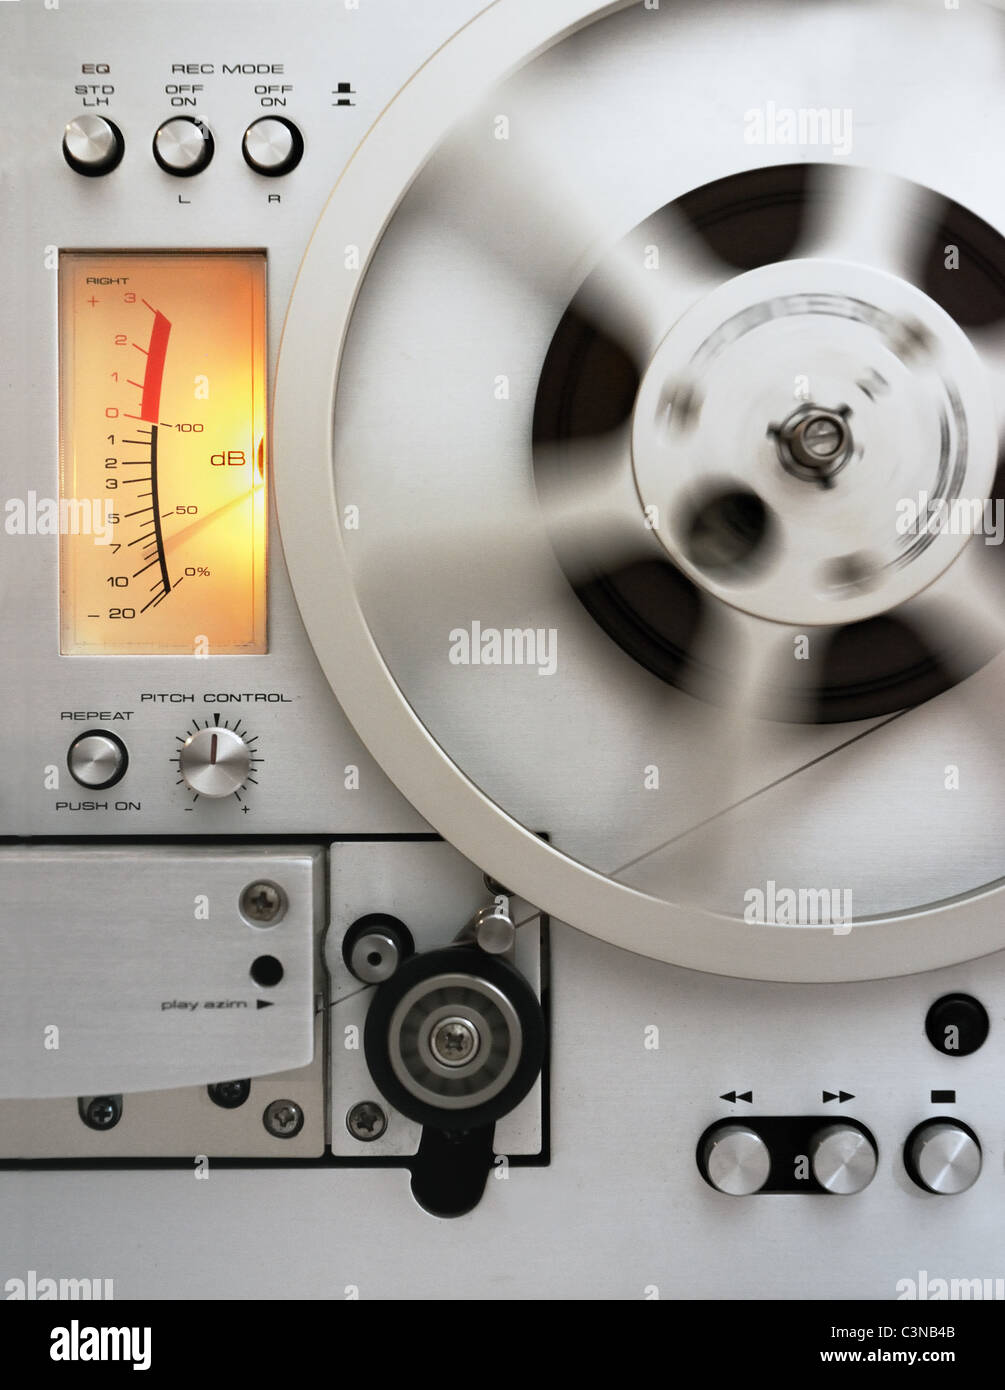 A reel-to-reel tape recorder - Stock Image